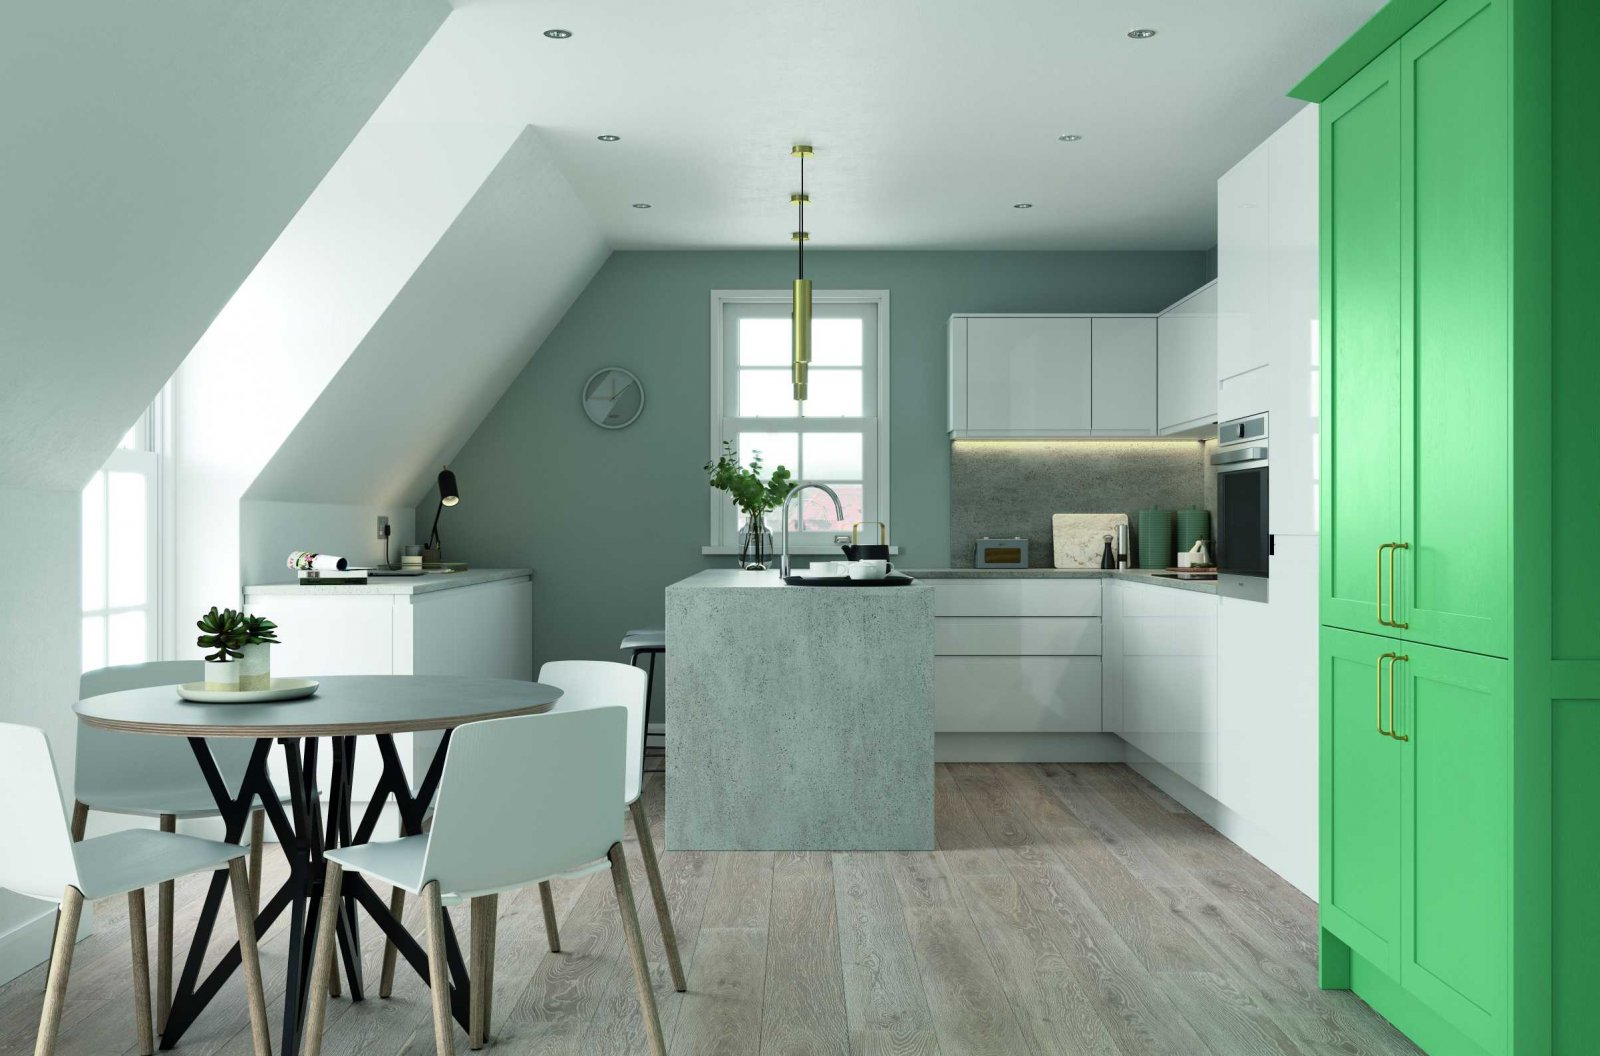 gloss white and green handleless kitchen worktops whole